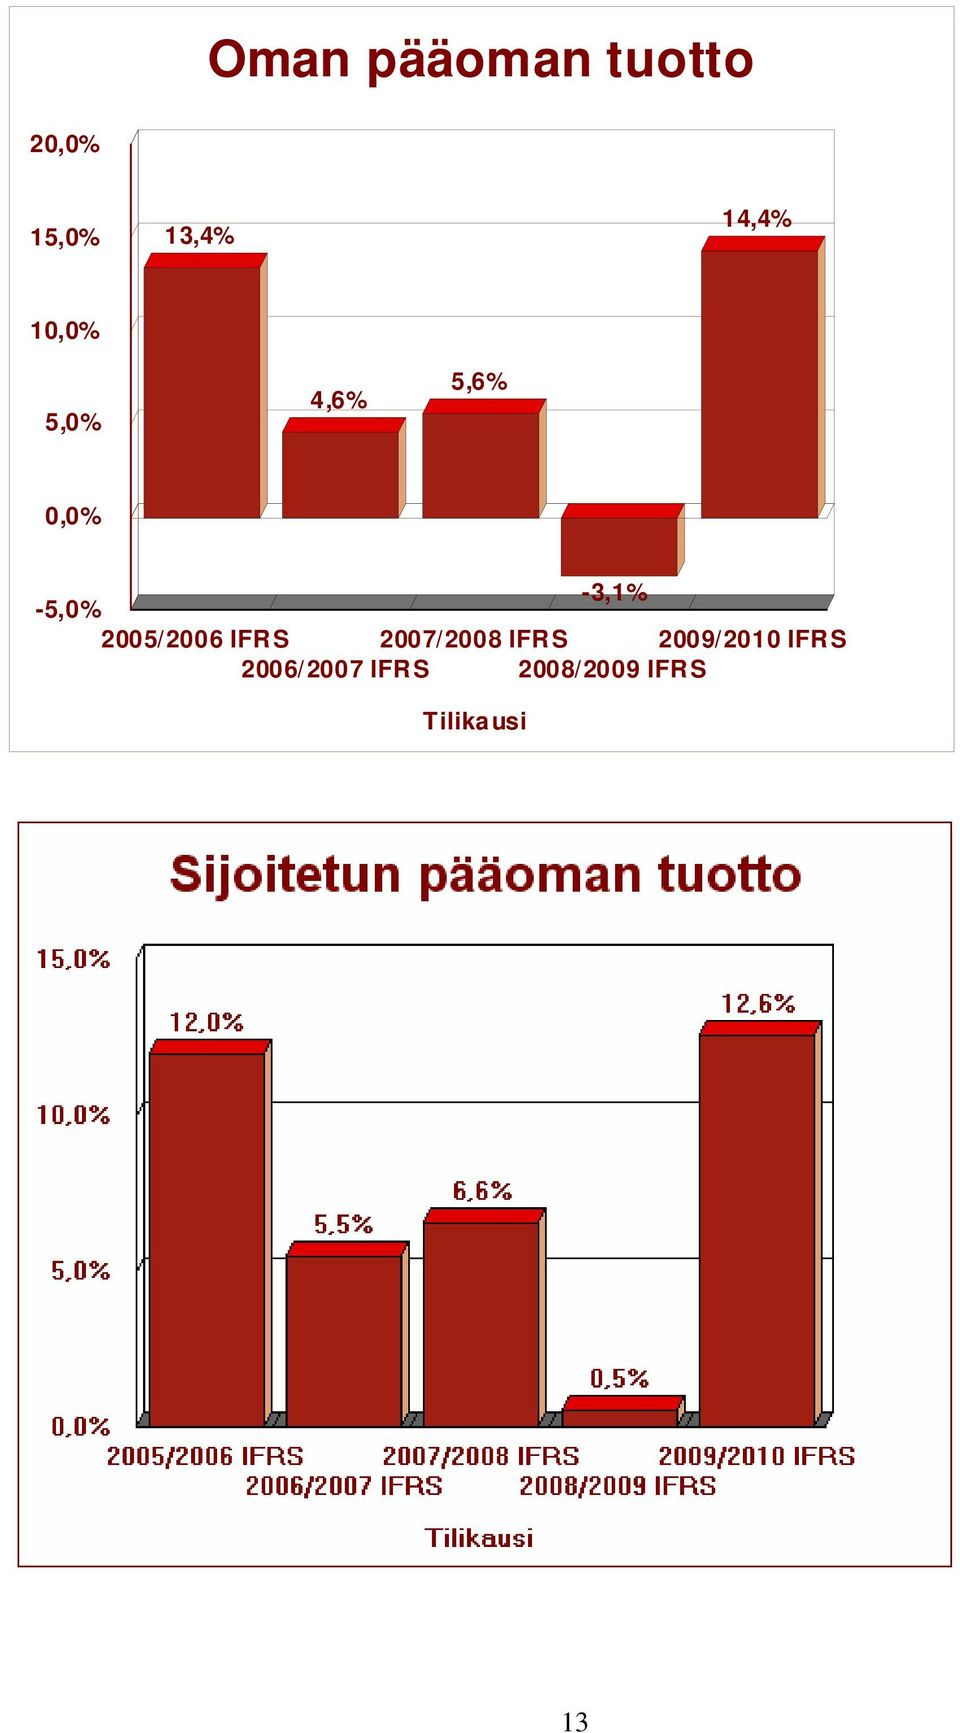 -5,0% 2005/2006 IFRS 2007/2008 IFRS